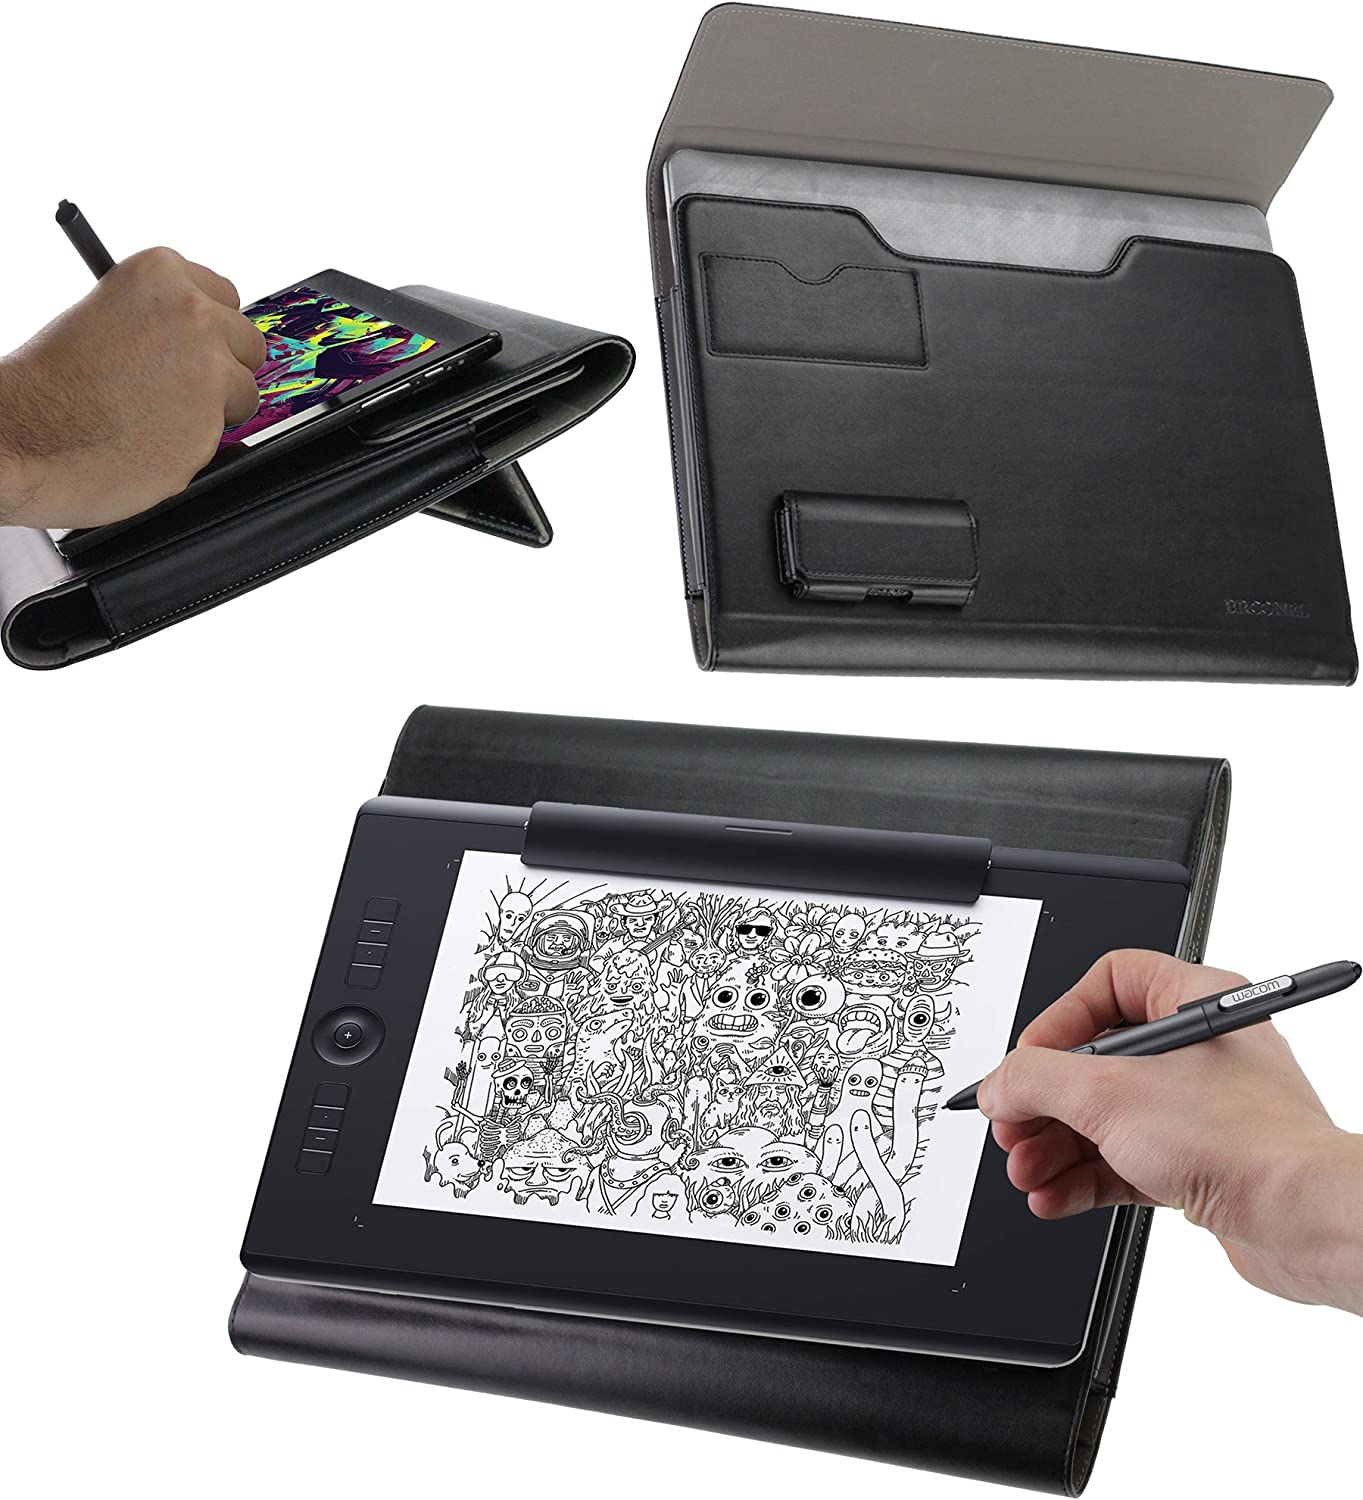 Broonel Luxury Leather Graphics Tablet Case with Built-in Ergonomic Stand Compatible with The Wacom Intuos Pro Small Graphics Tablet